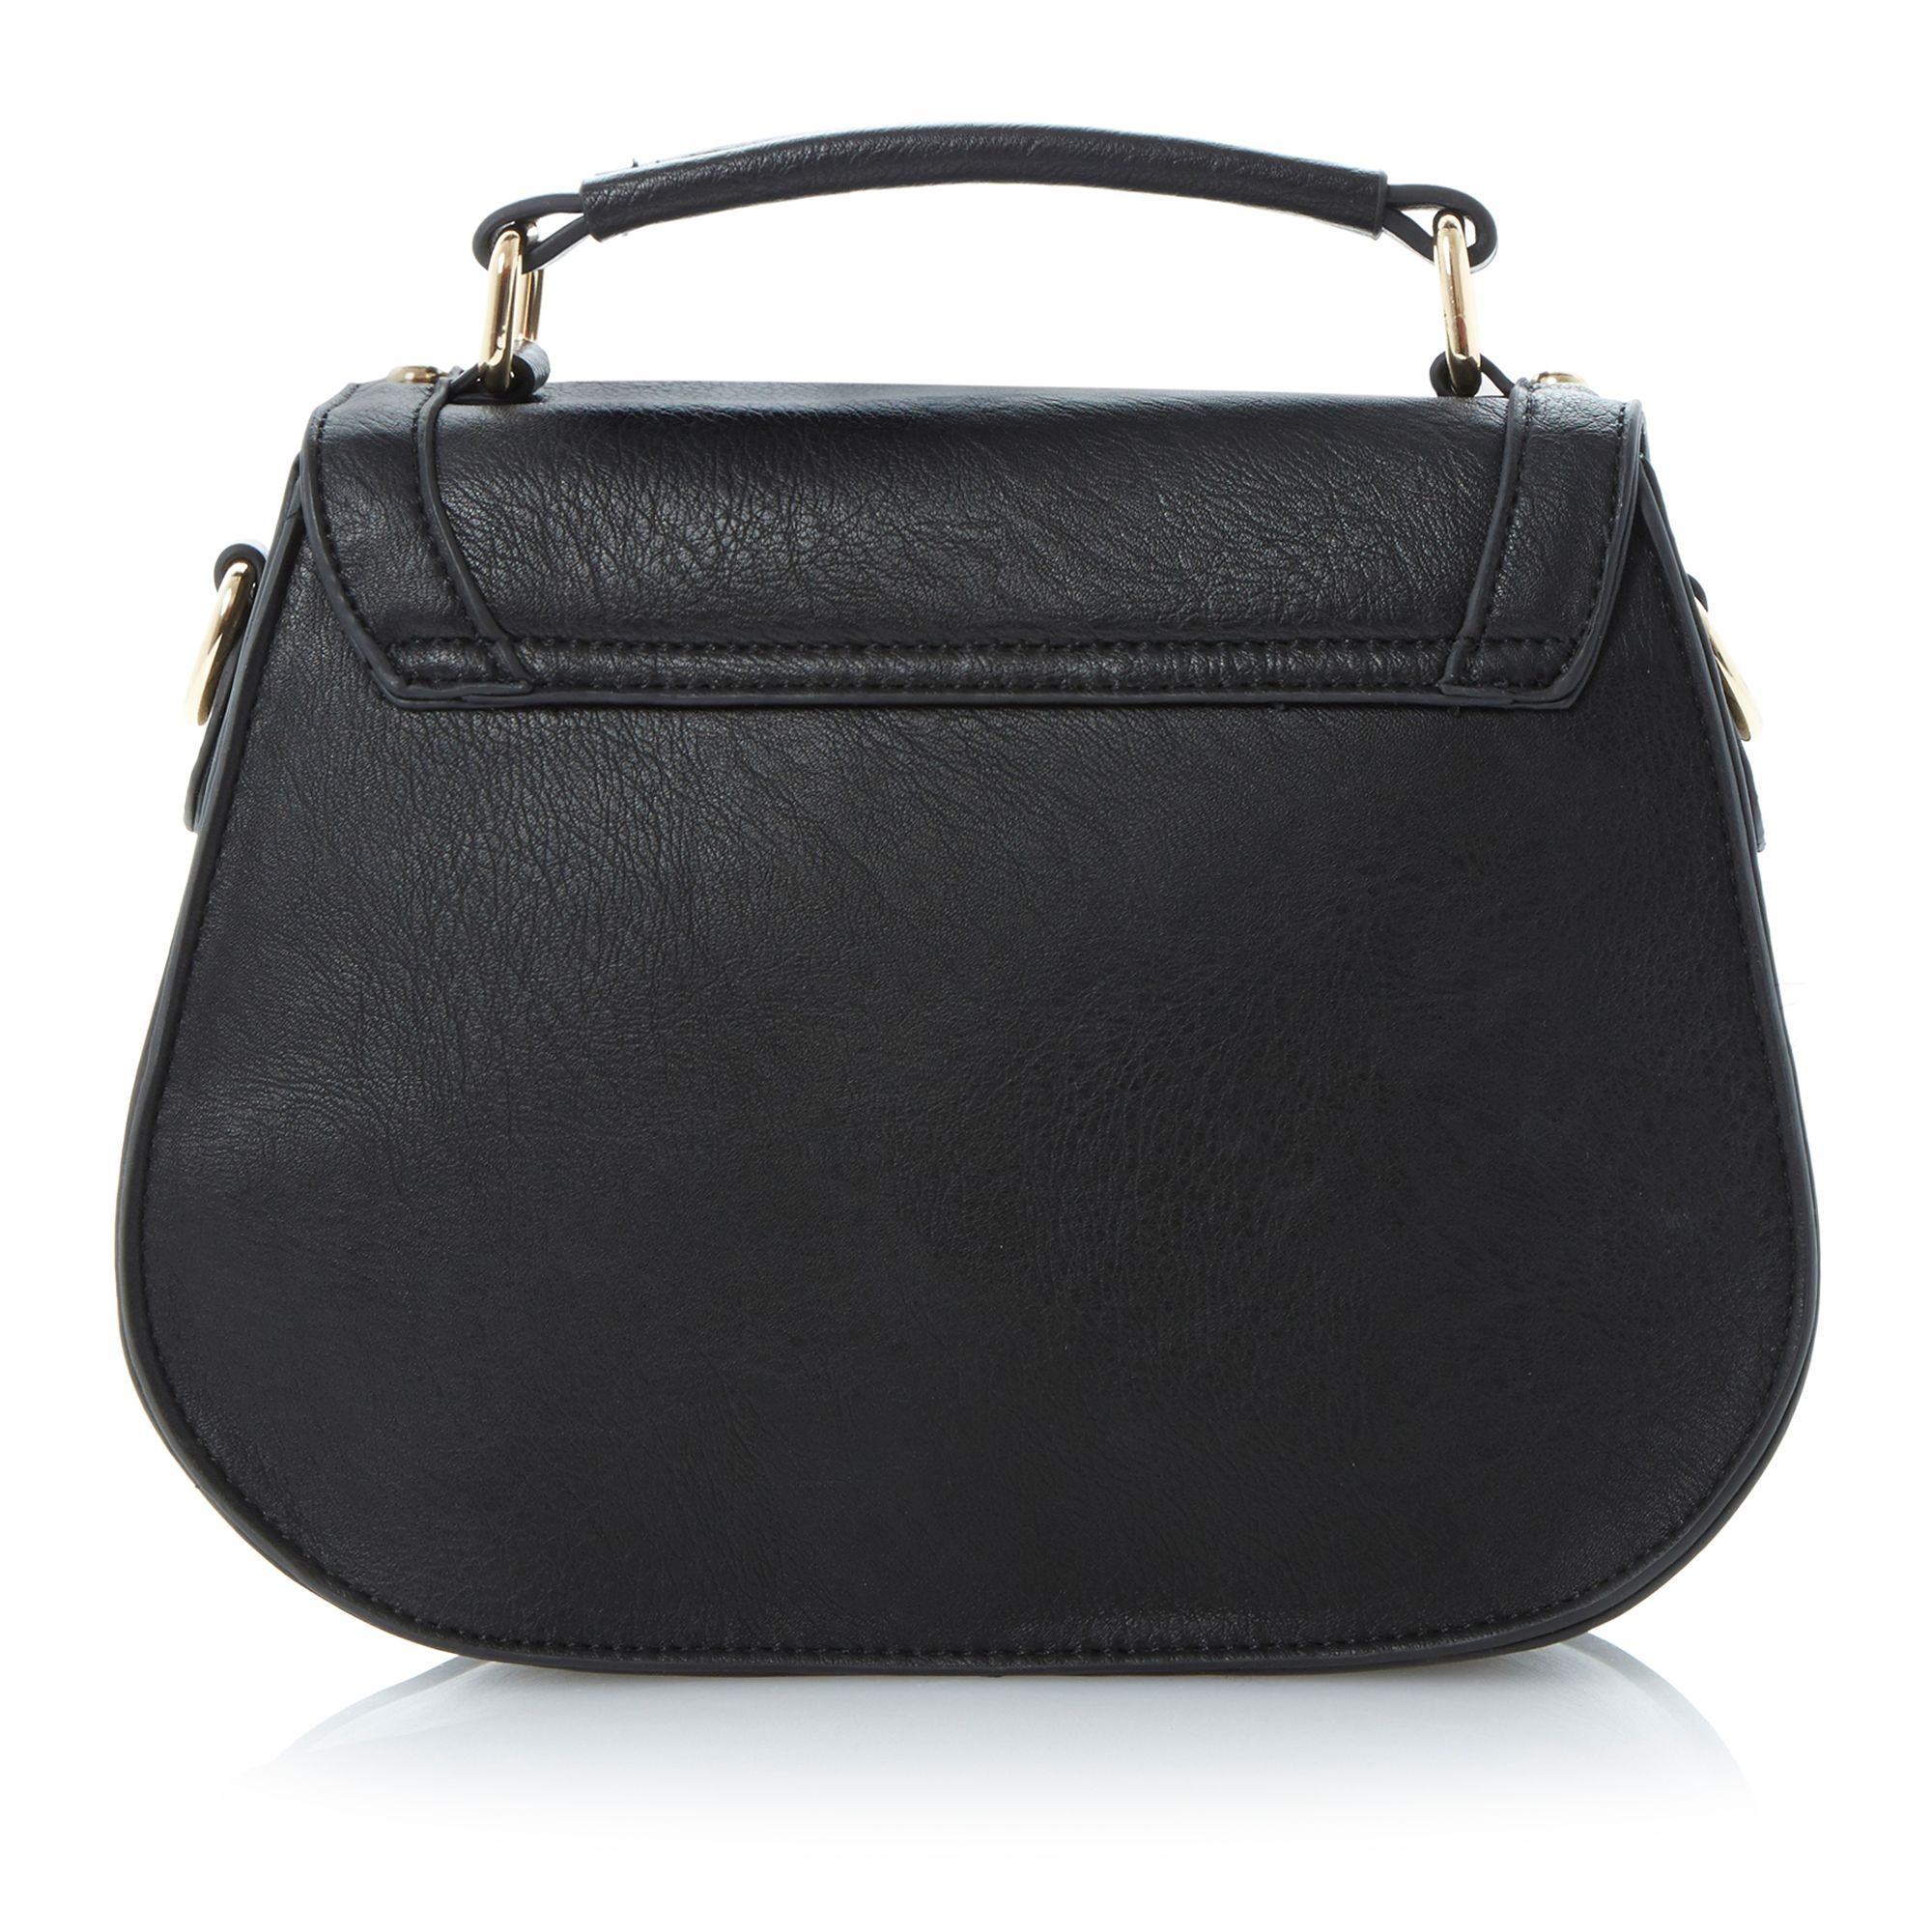 Laddia buckle trim saddle bag